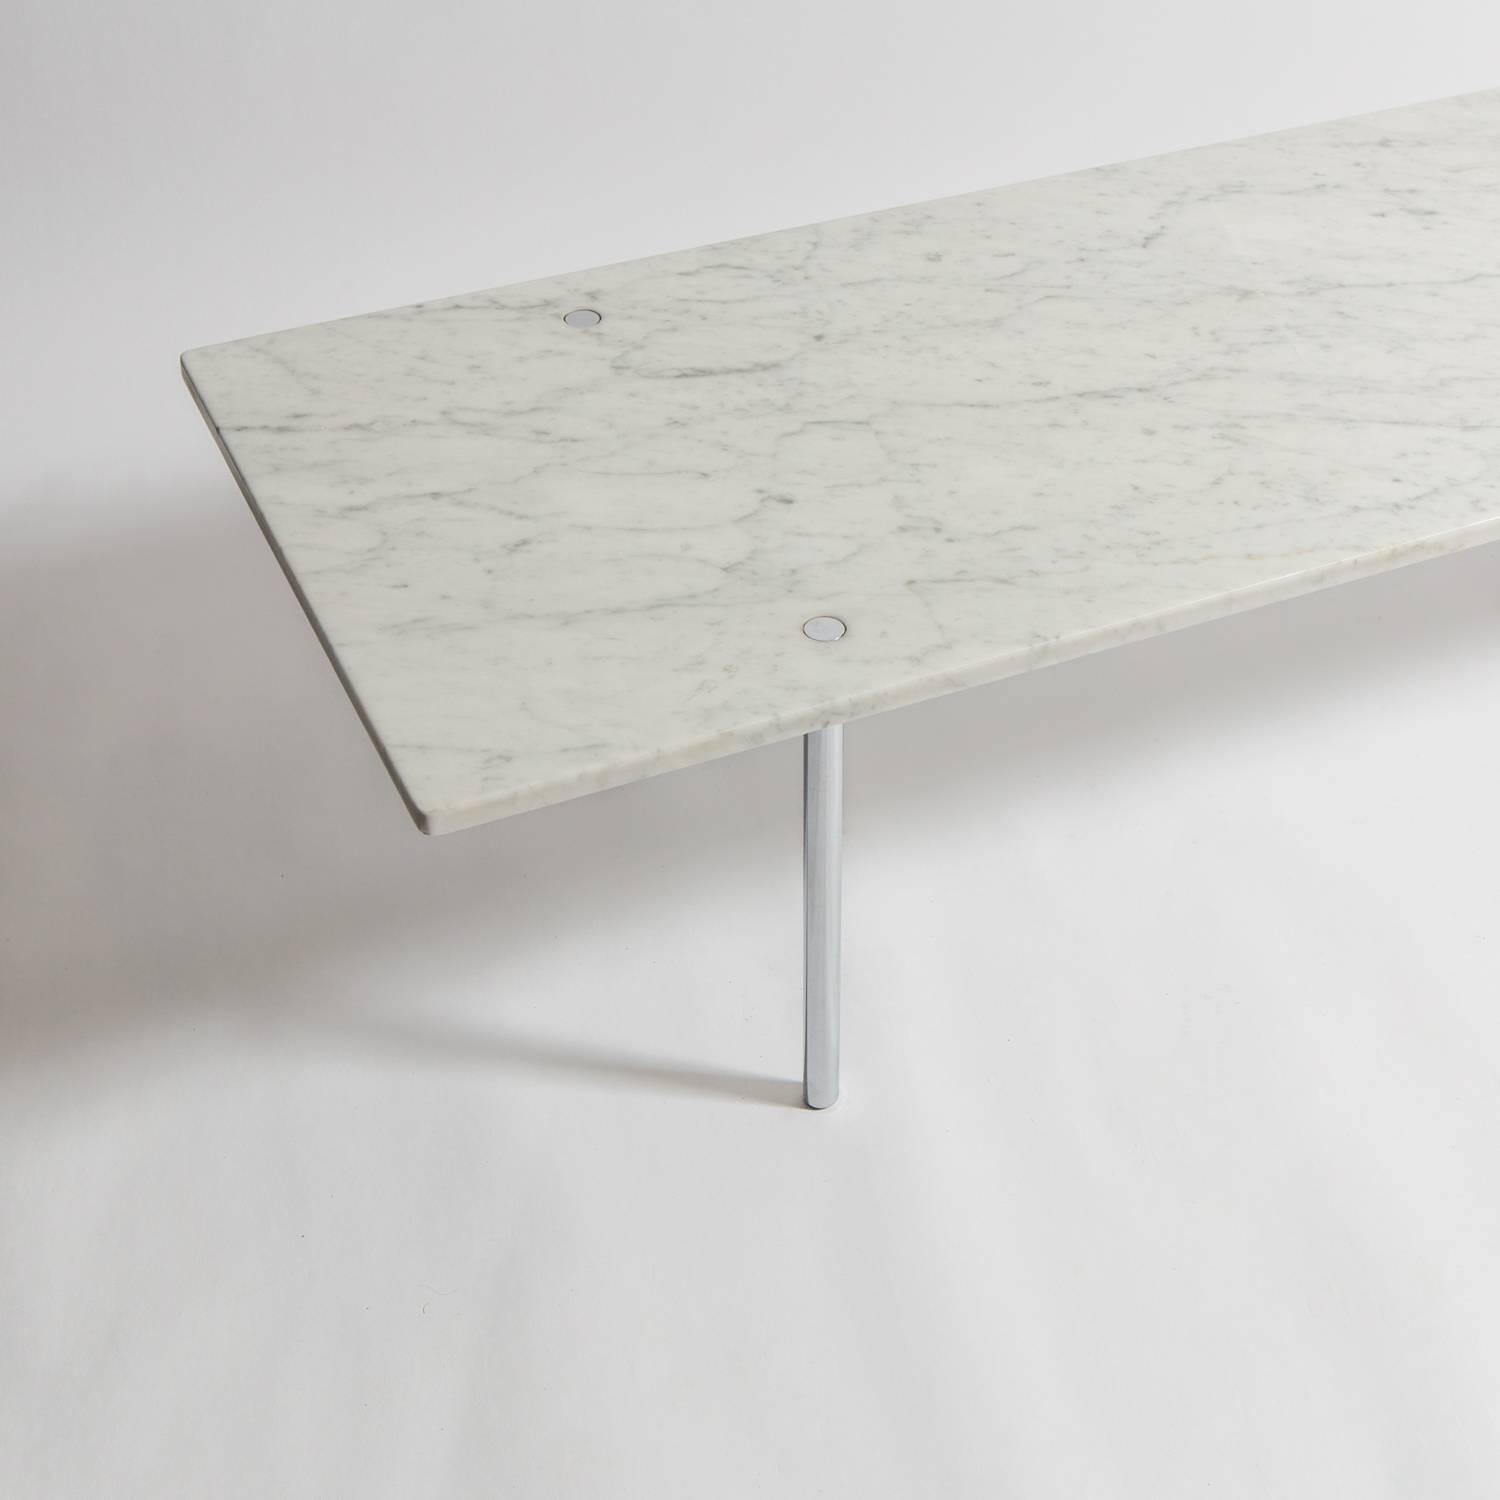 Carrara Marble And Chrome Coffee Table By Estelle And Erwine Laverne